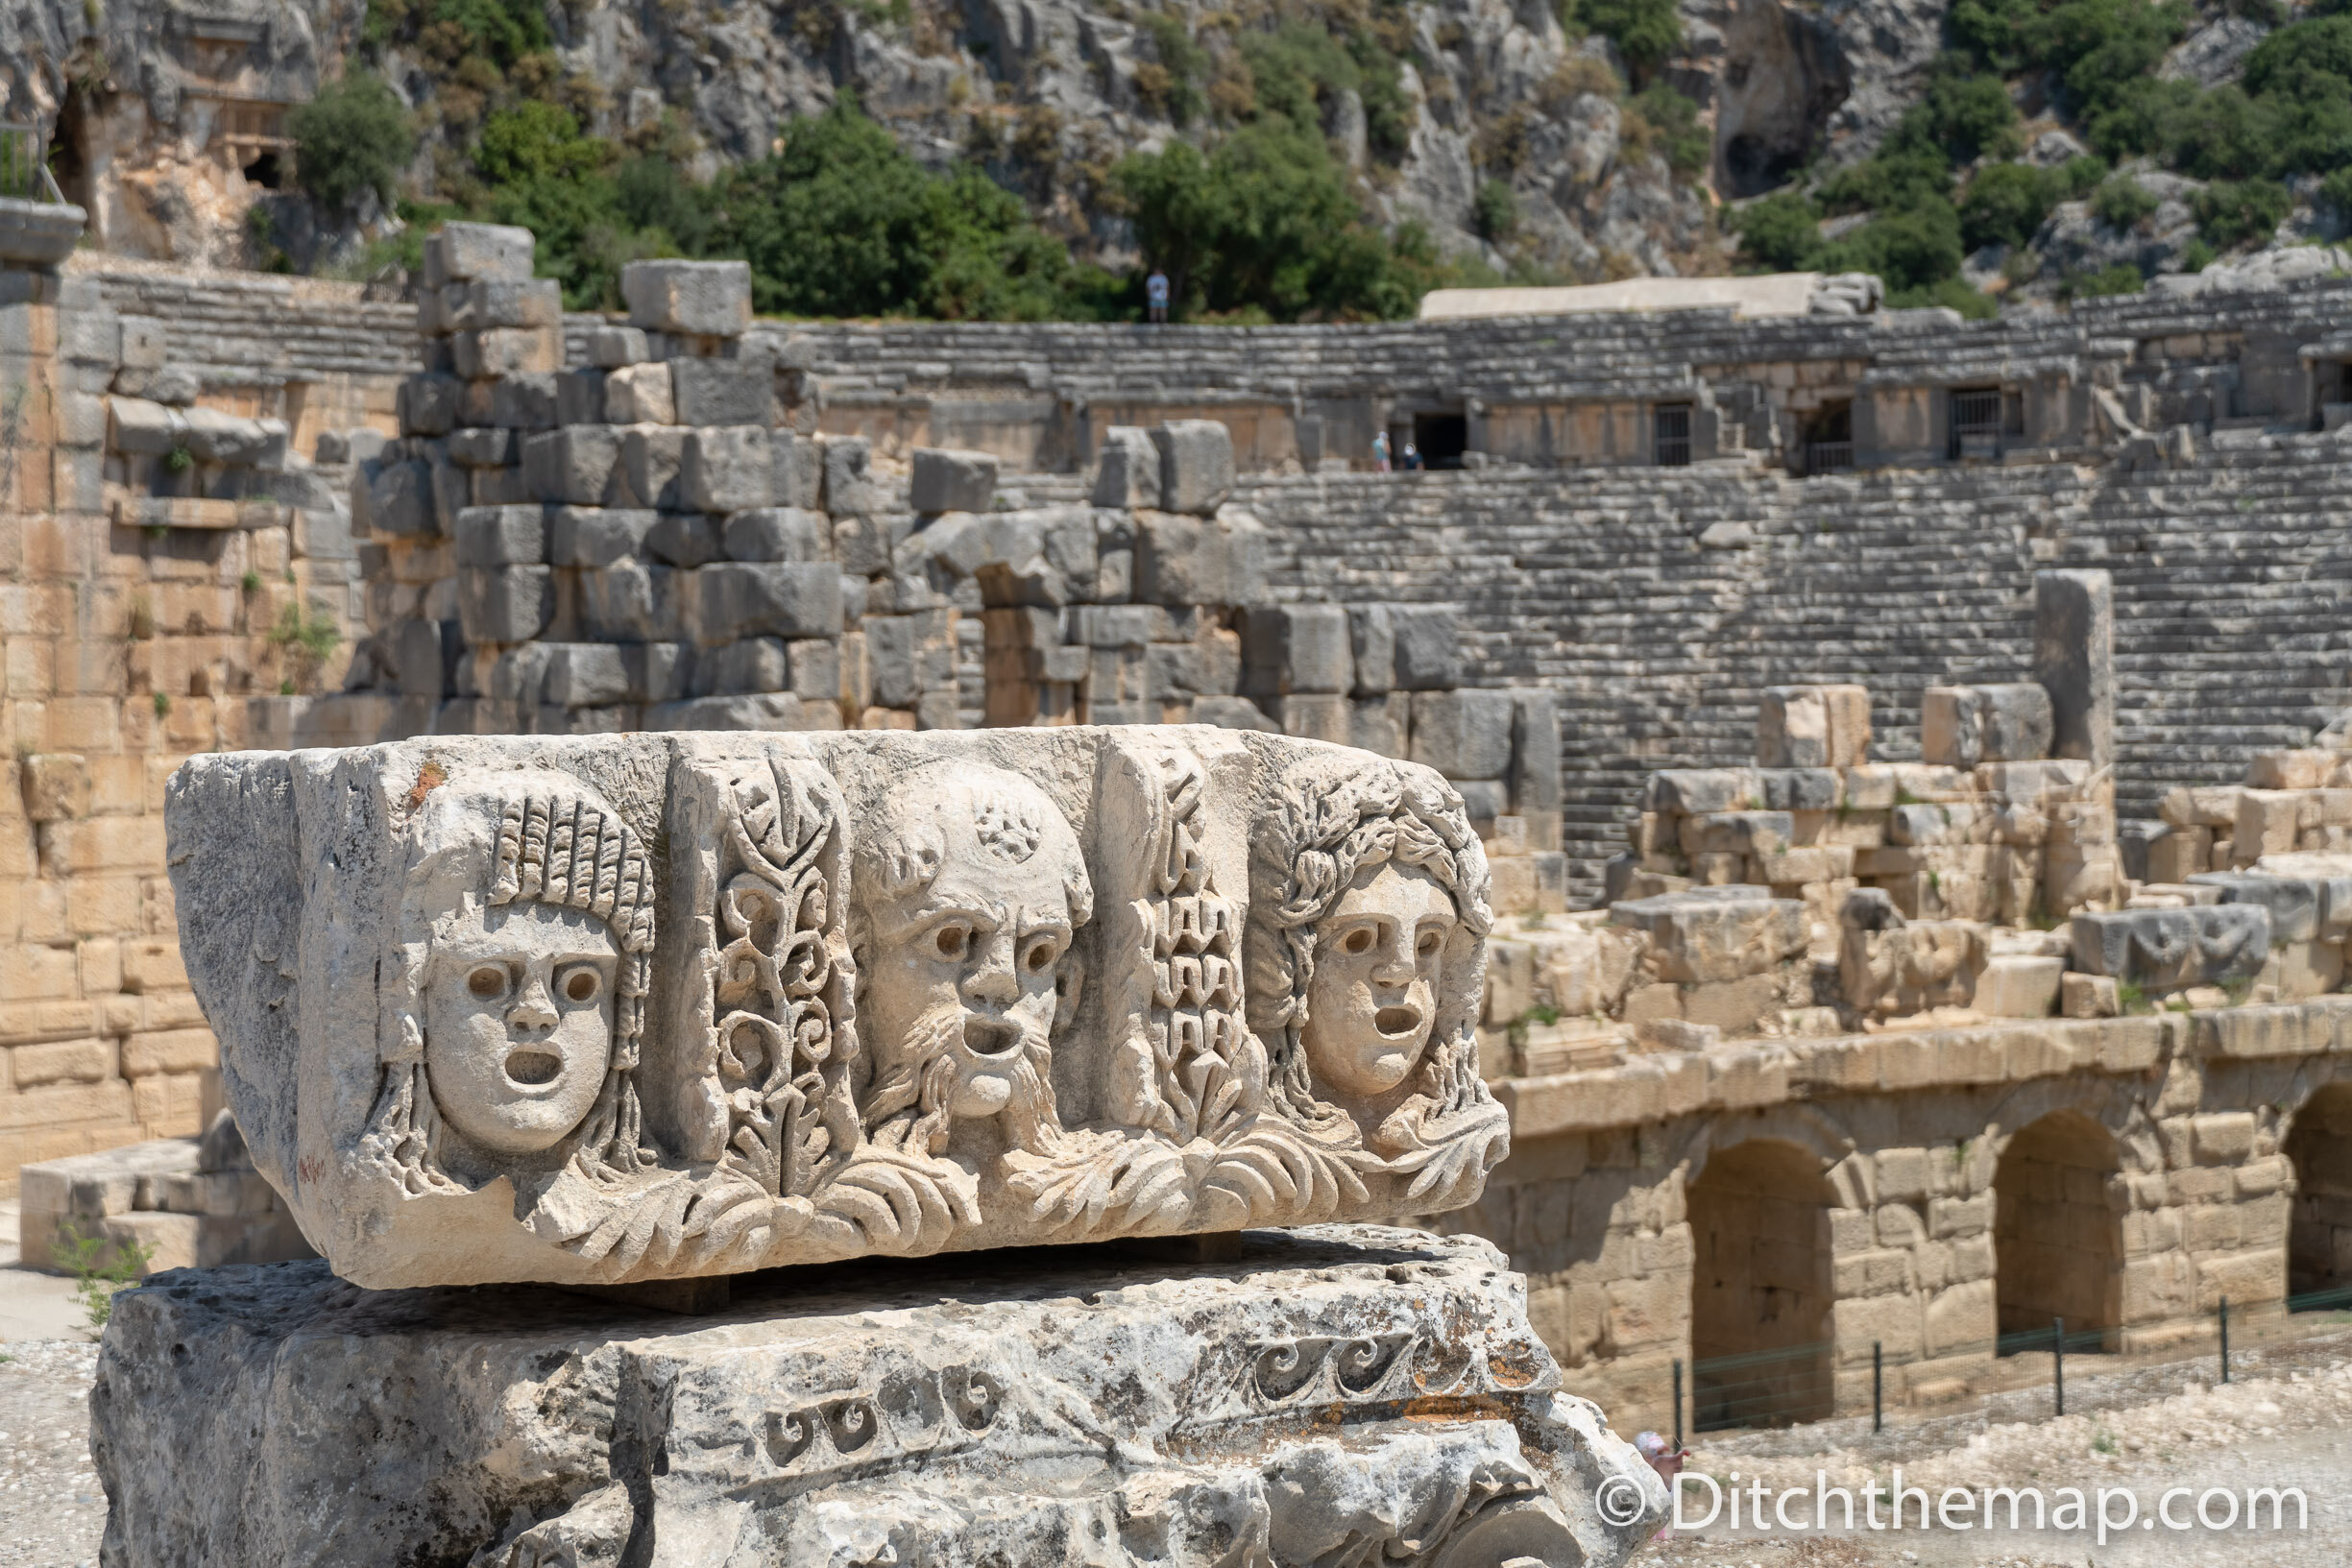 Exploring the ancient Lycian ruins of Myra